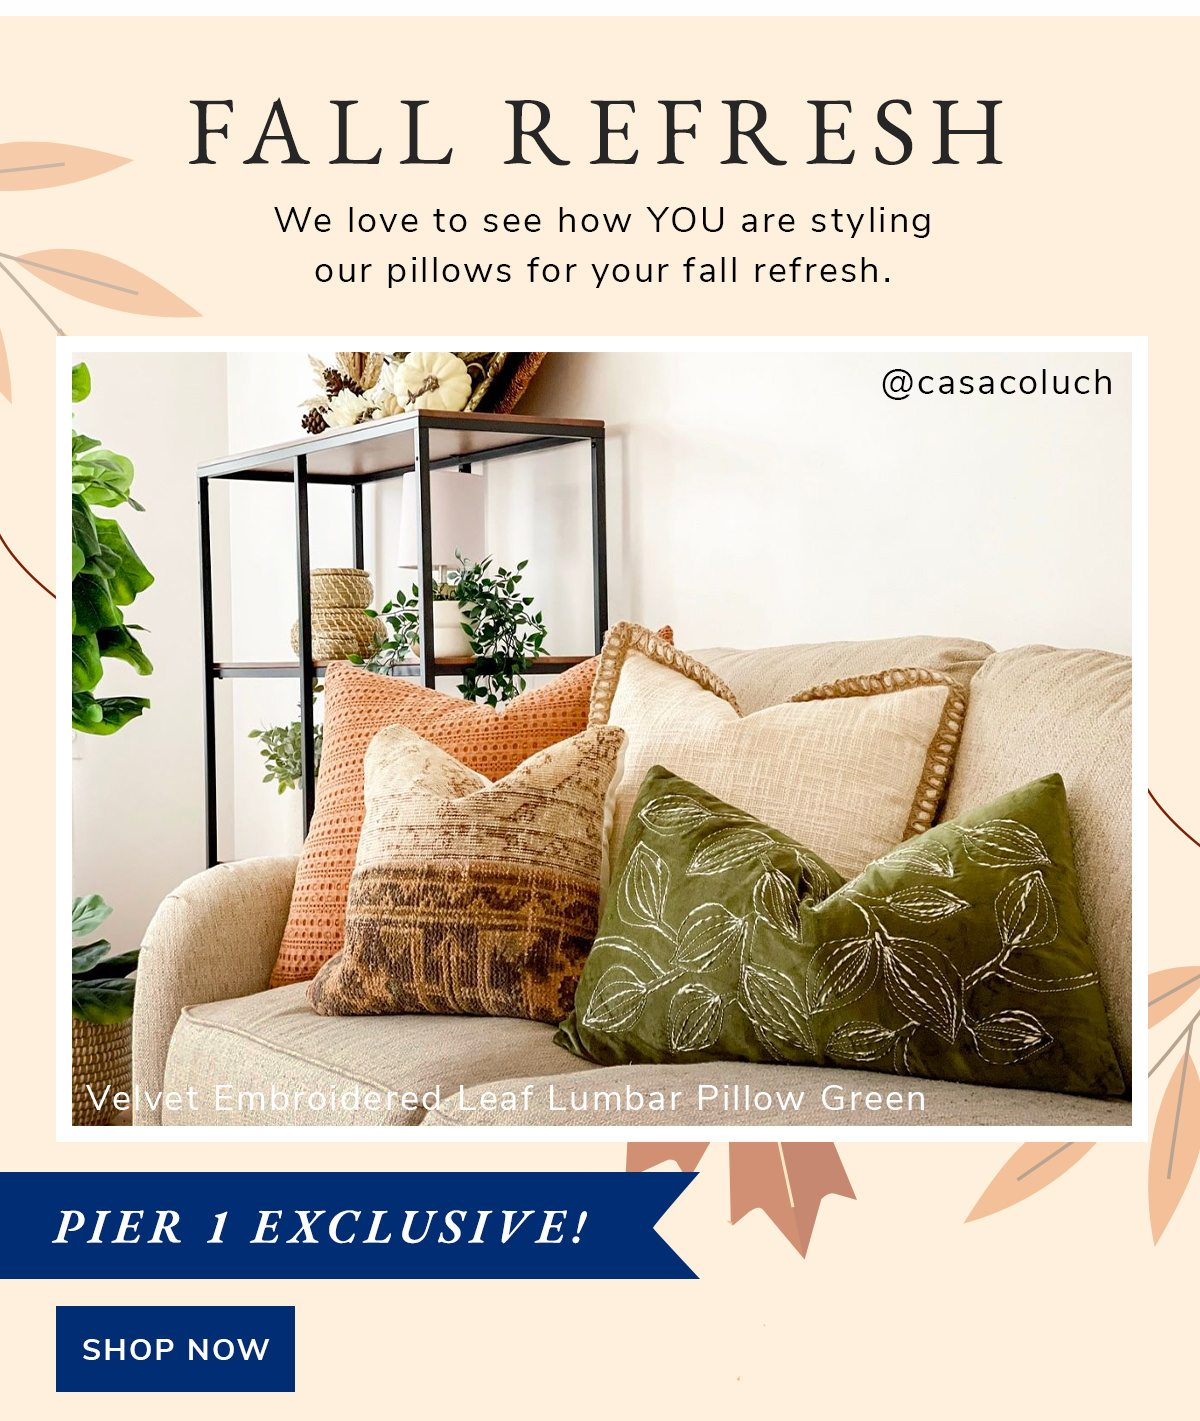 Fall refresh. We love to see how YOU are styling our pillows for your fall refresh. | SHOP NOW